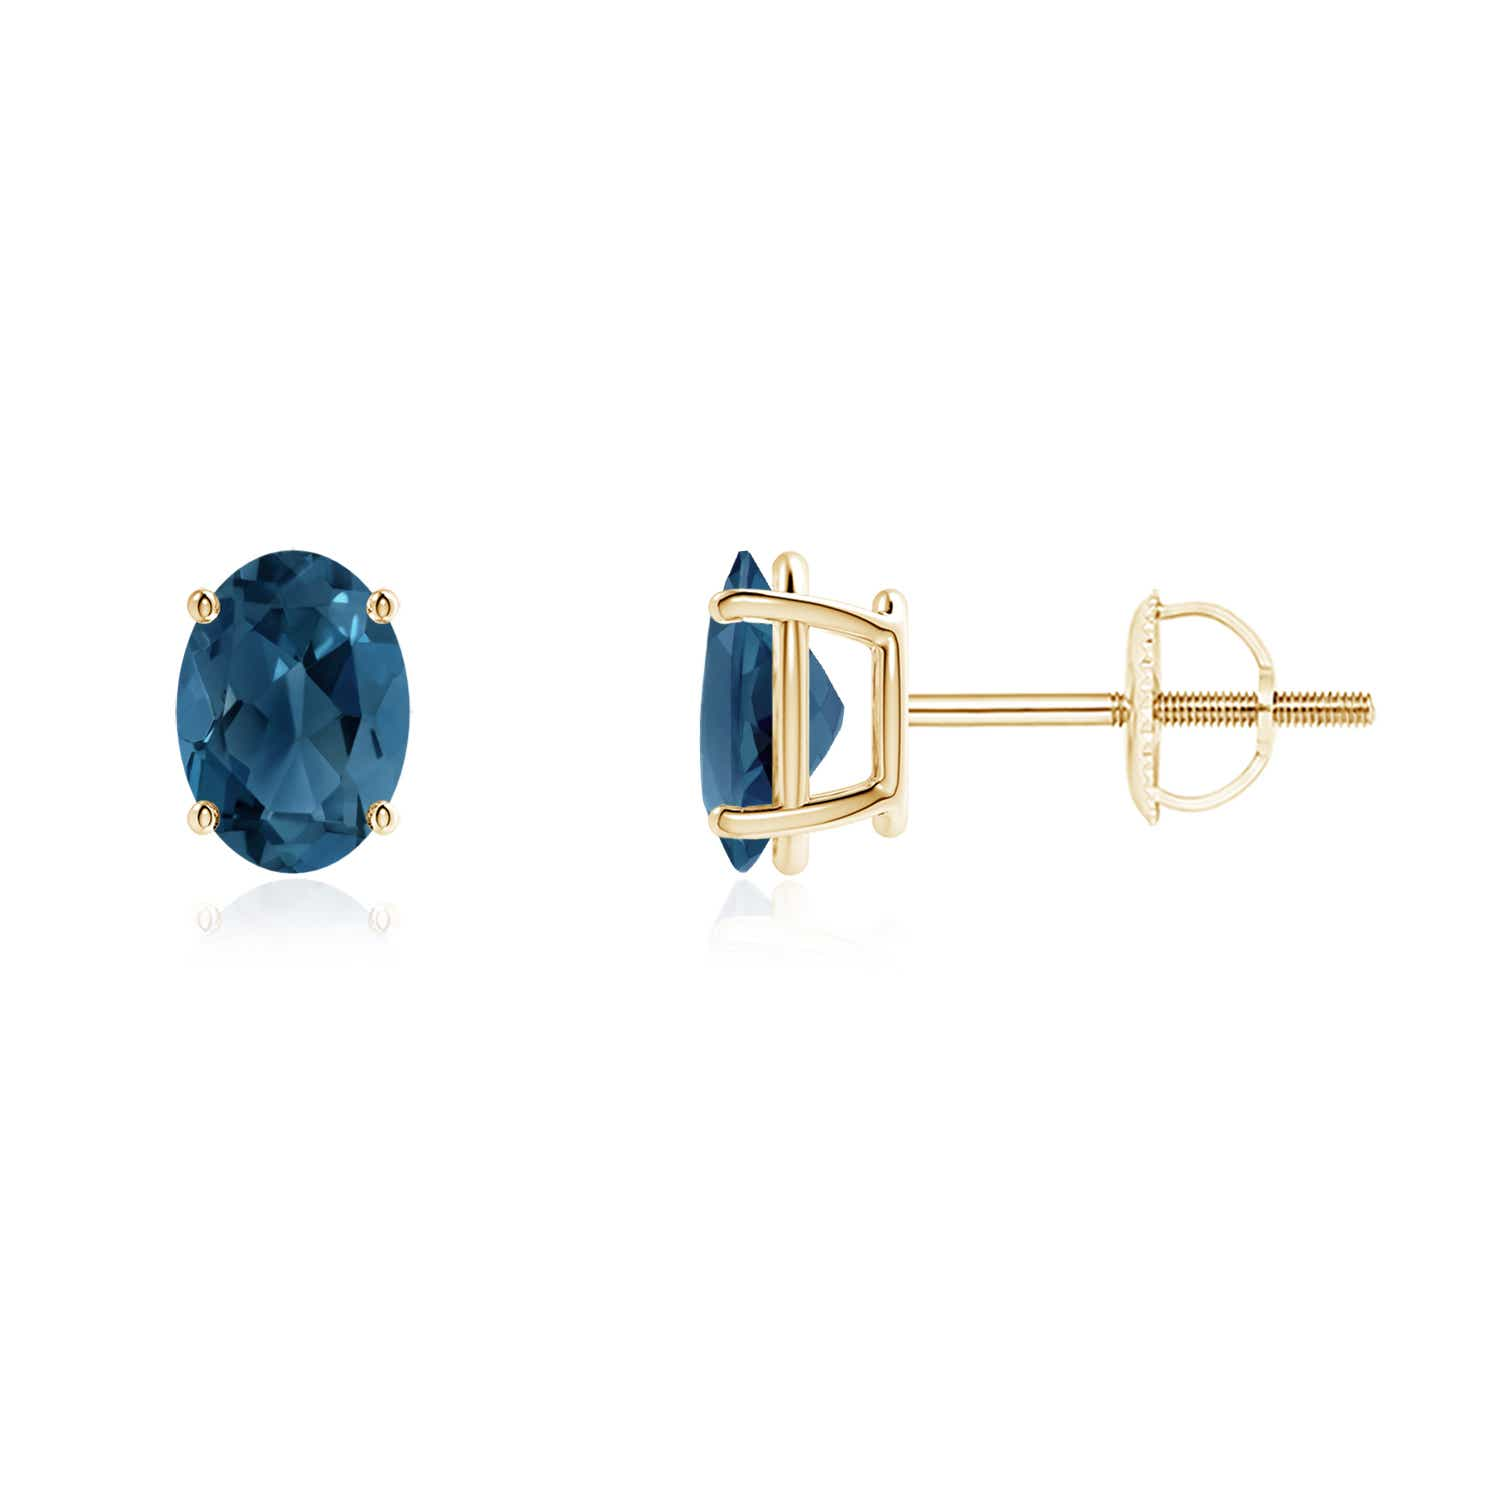 Angara Prong Set London Blue Topaz Stud Earrings in Yellow Gold 3bNtX